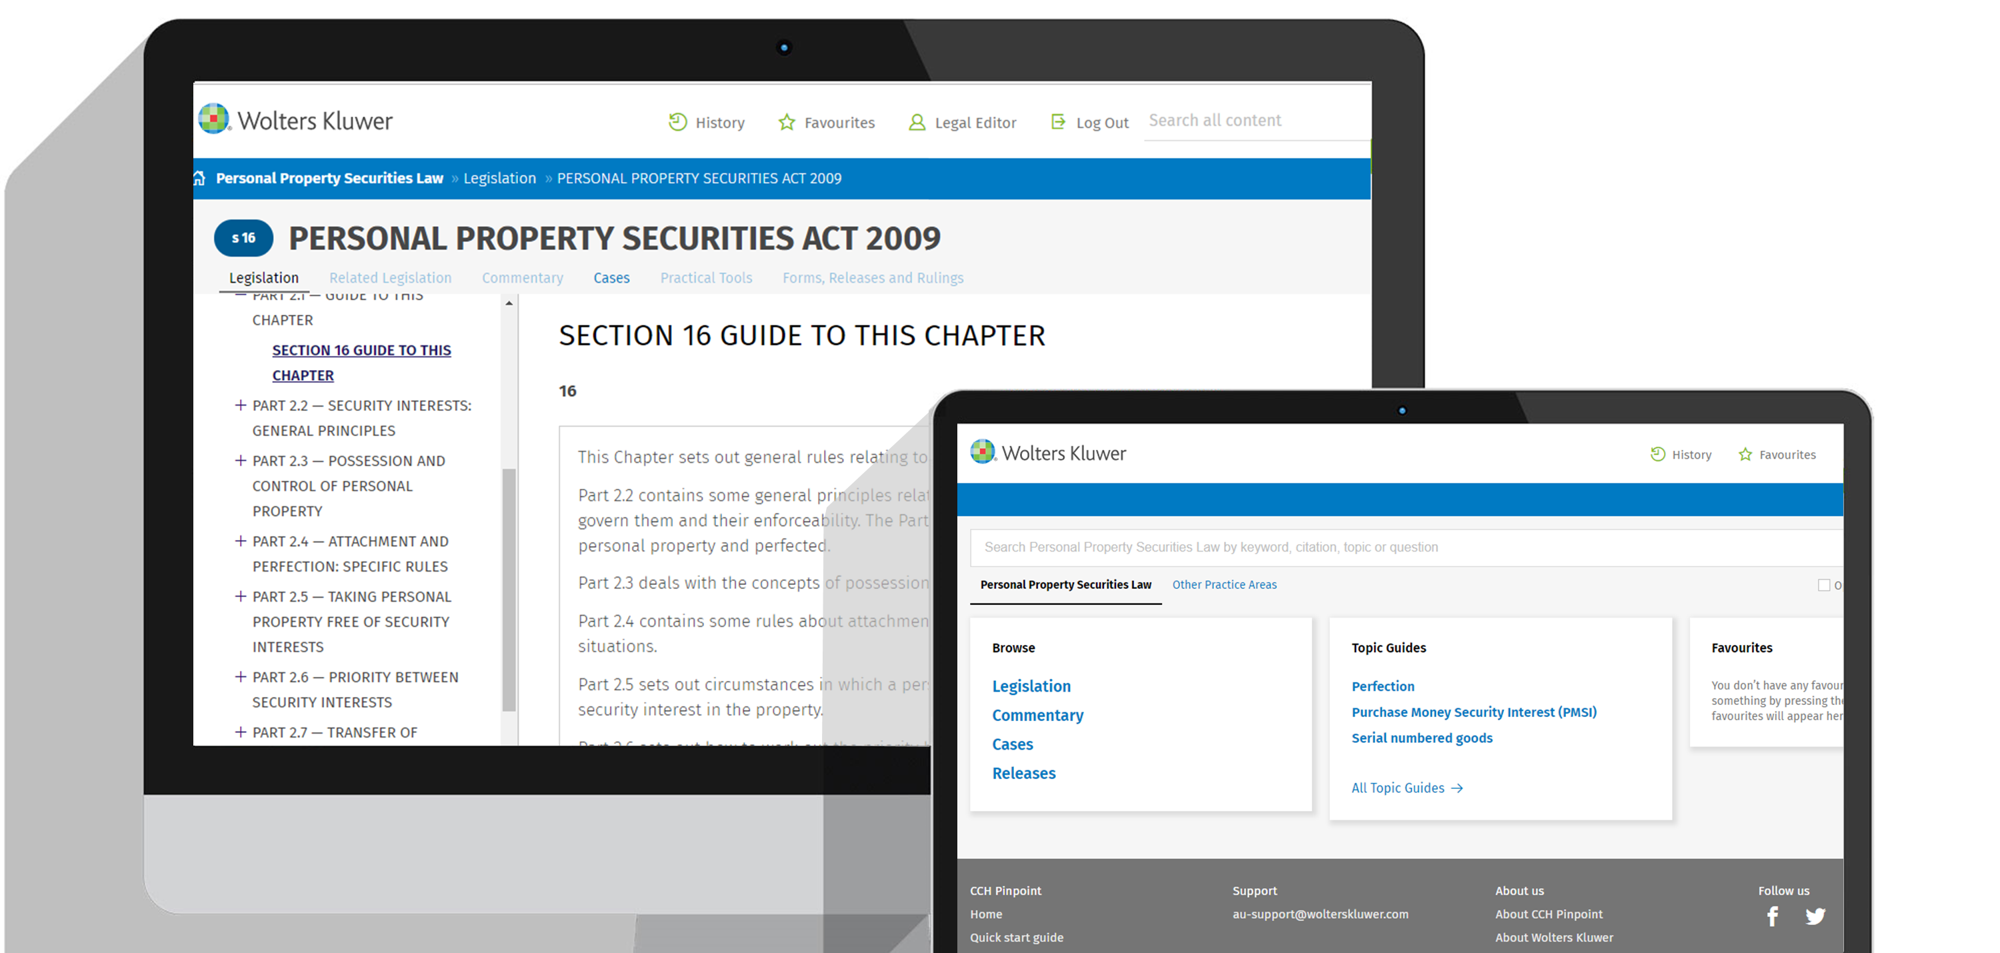 Personal Property Securities Law